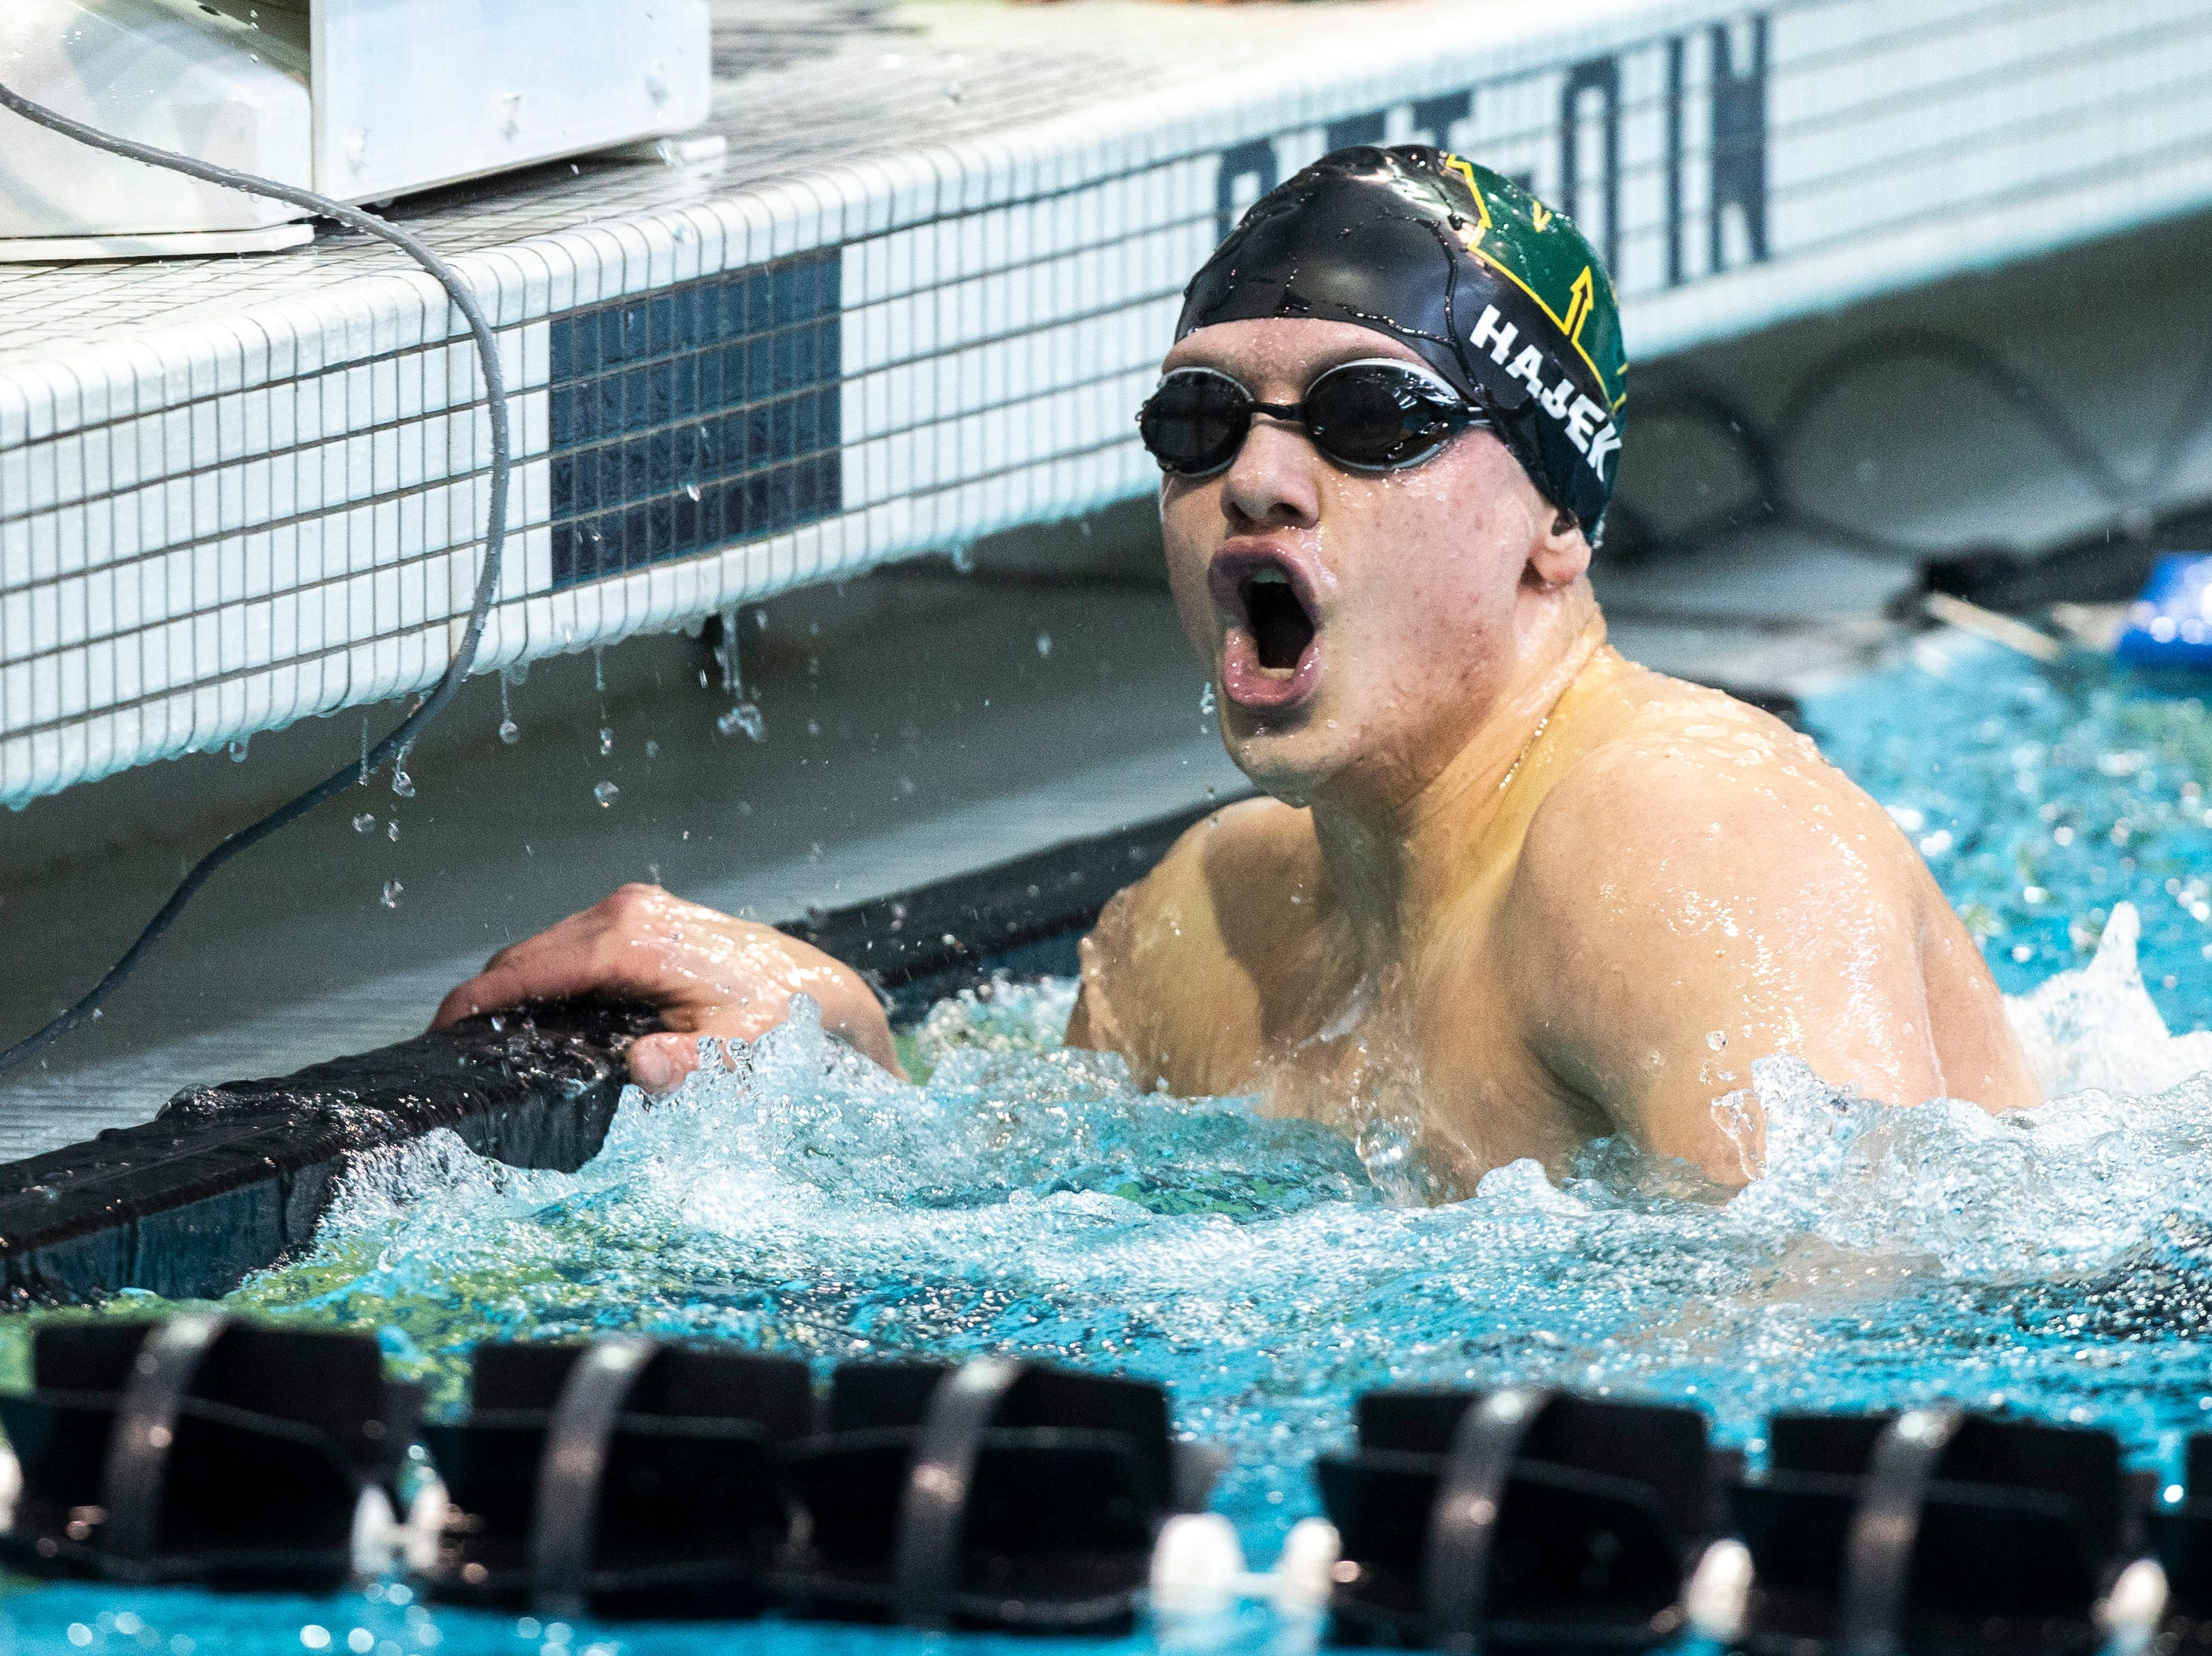 Iowa City West junior Izaak Hajek reacts after finishing first in the 100 yard butterfly during the Iowa boys' state swimming regional championship meet on Saturday, Feb. 9, 2019 at Campus Recreation and Wellness Center on the University of Iowa campus in Iowa City, Iowa. Hajek finished first overall, with a time of 49.45.